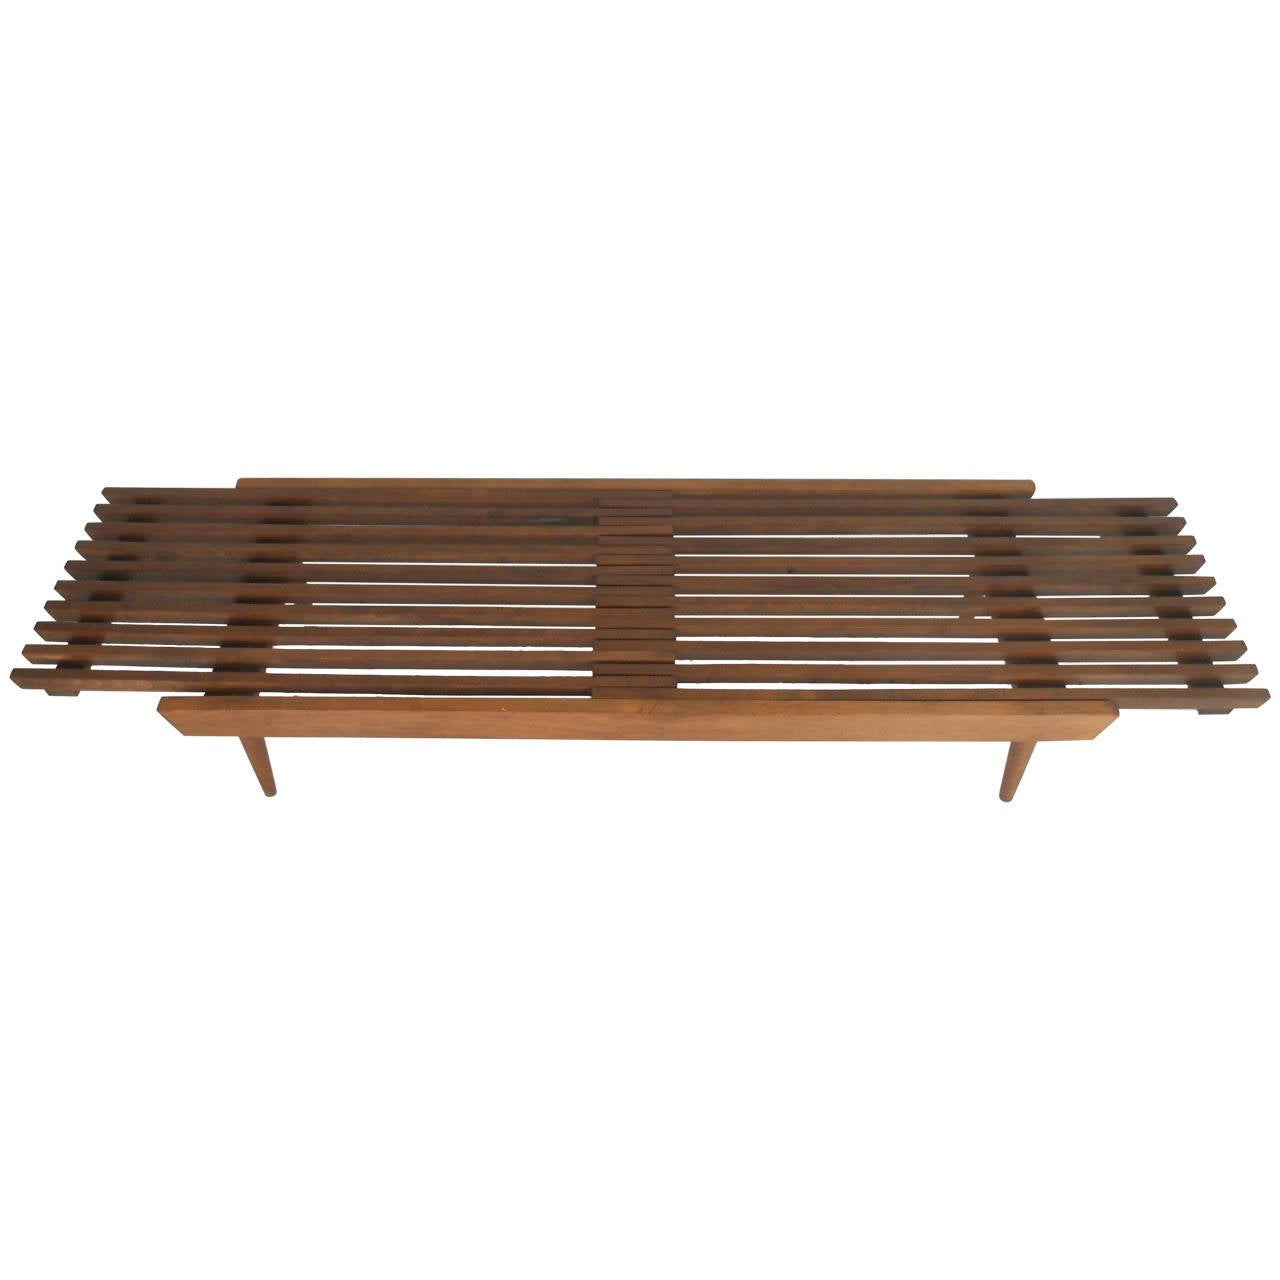 Neptune Cocktail Table Expanding Slat Coffee Table For Sale at 1stdibs